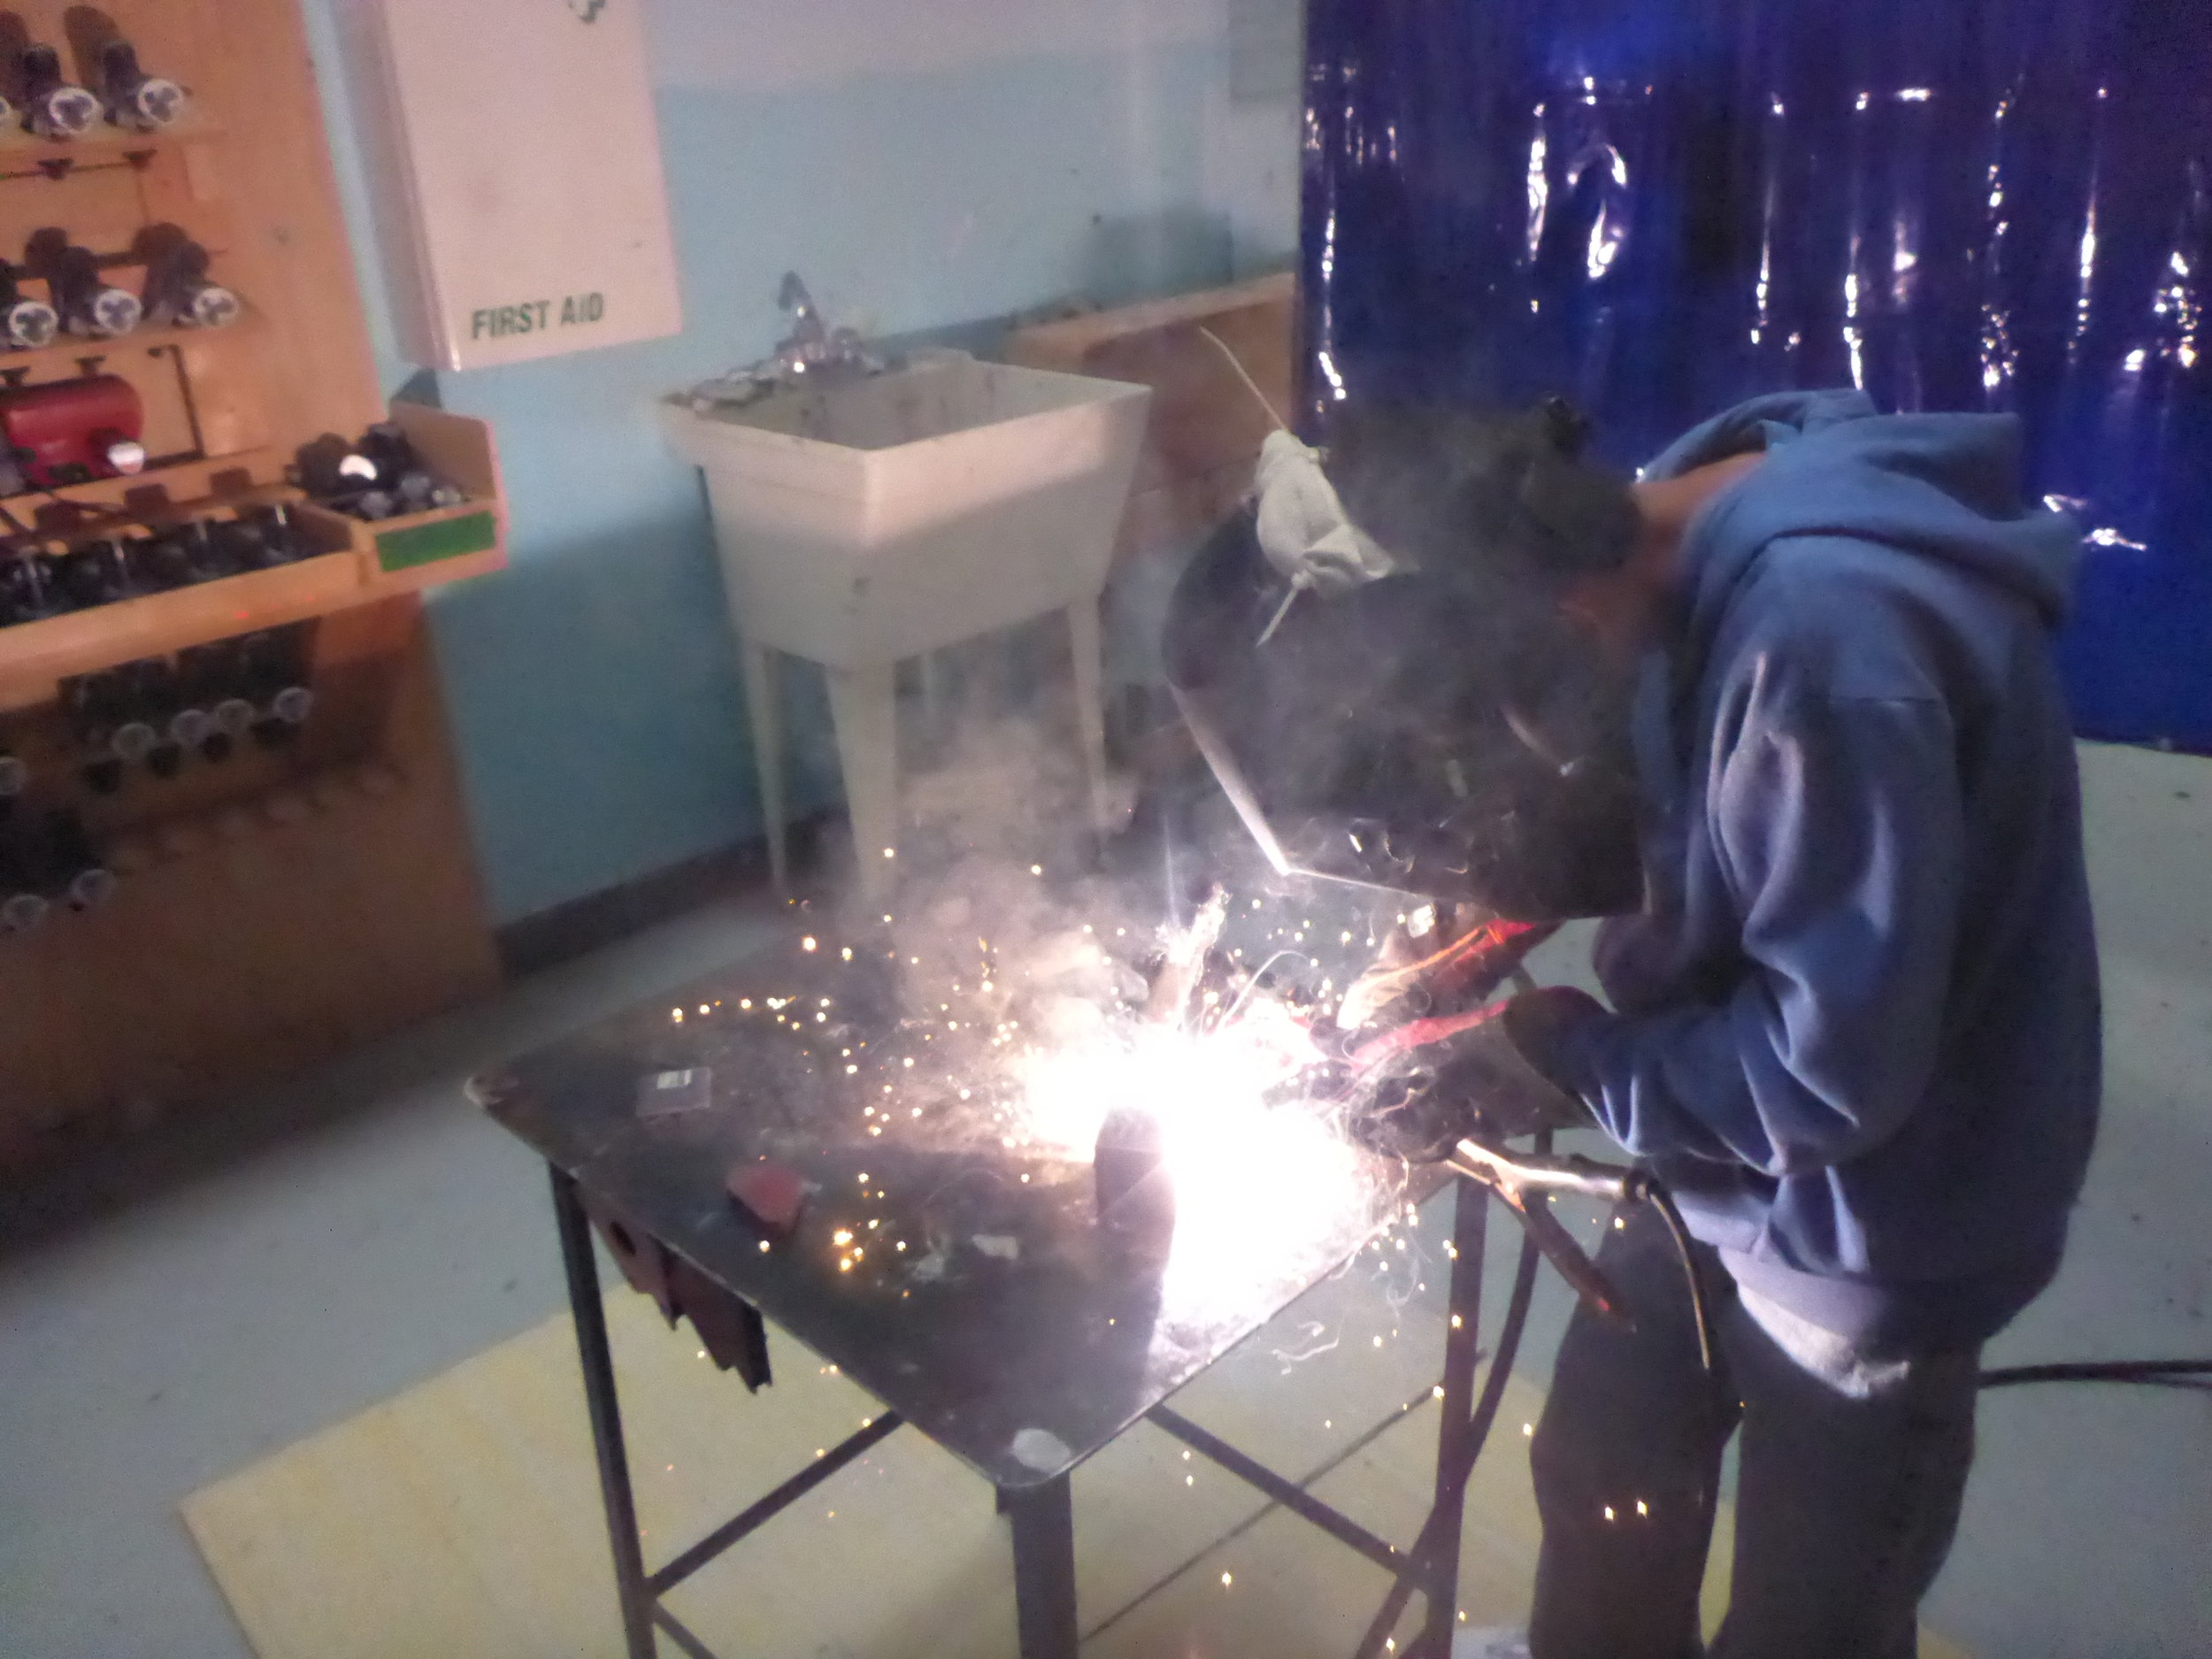 Jay welds two sides of his box together!